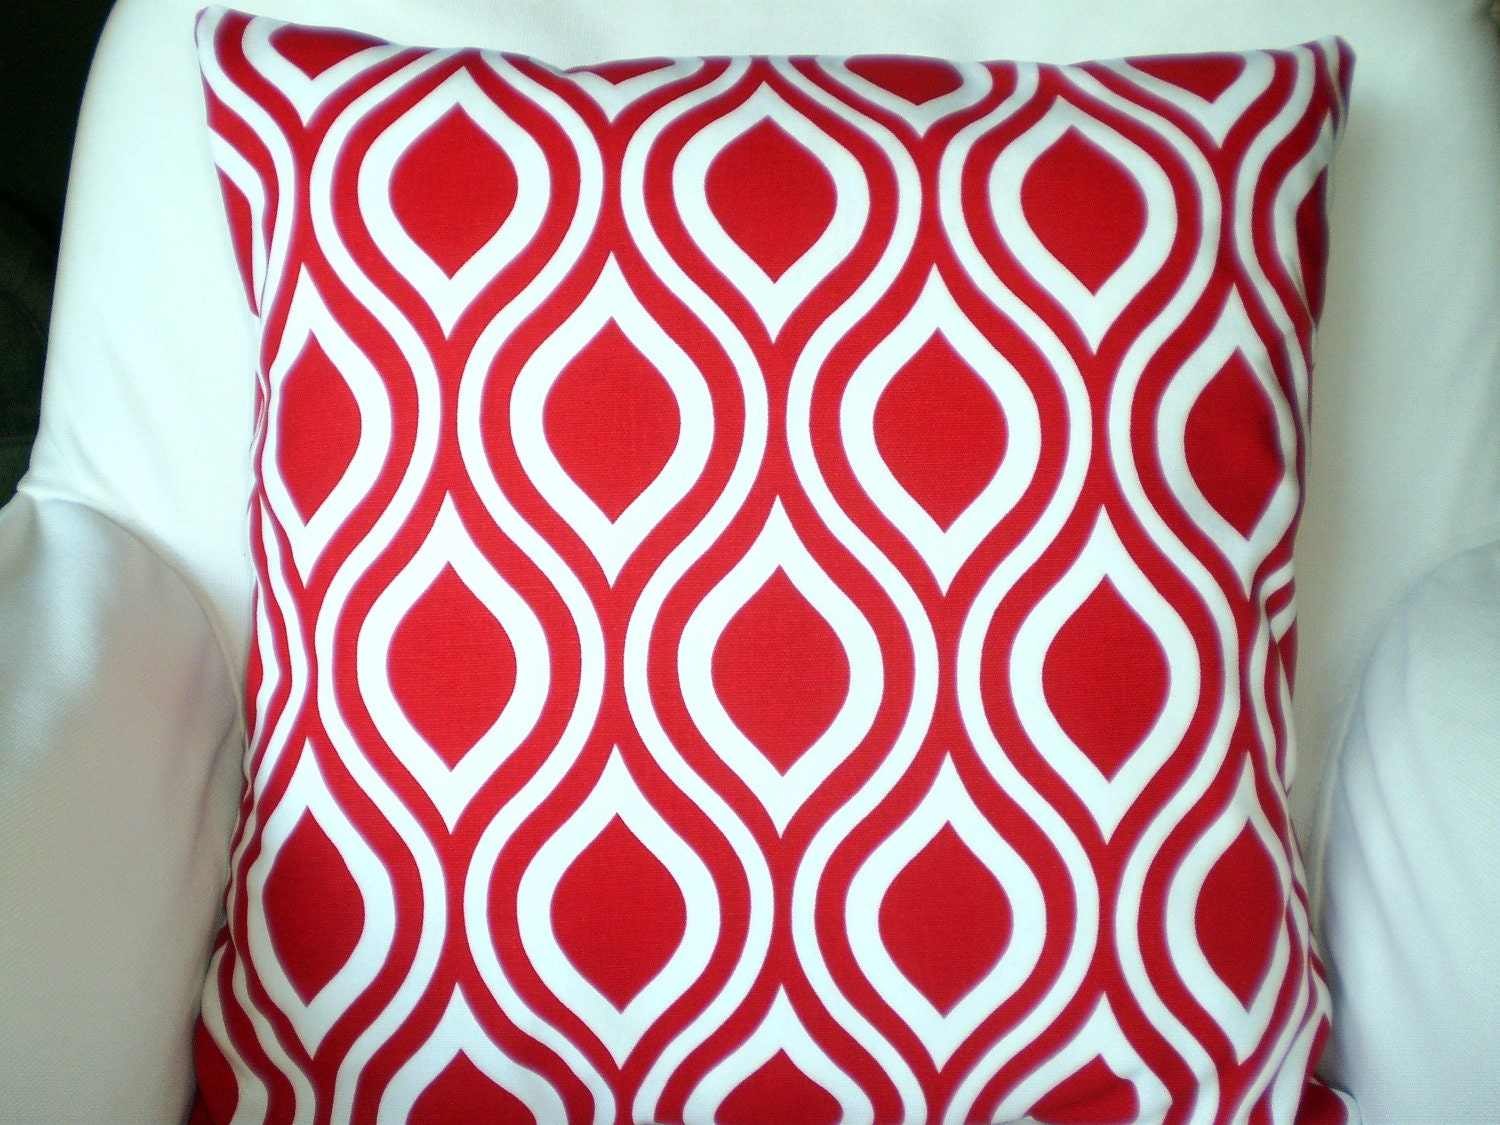 Red And White Throw Pillow Covers : Red White Pillow Covers Decorative Throw by PillowCushionCovers